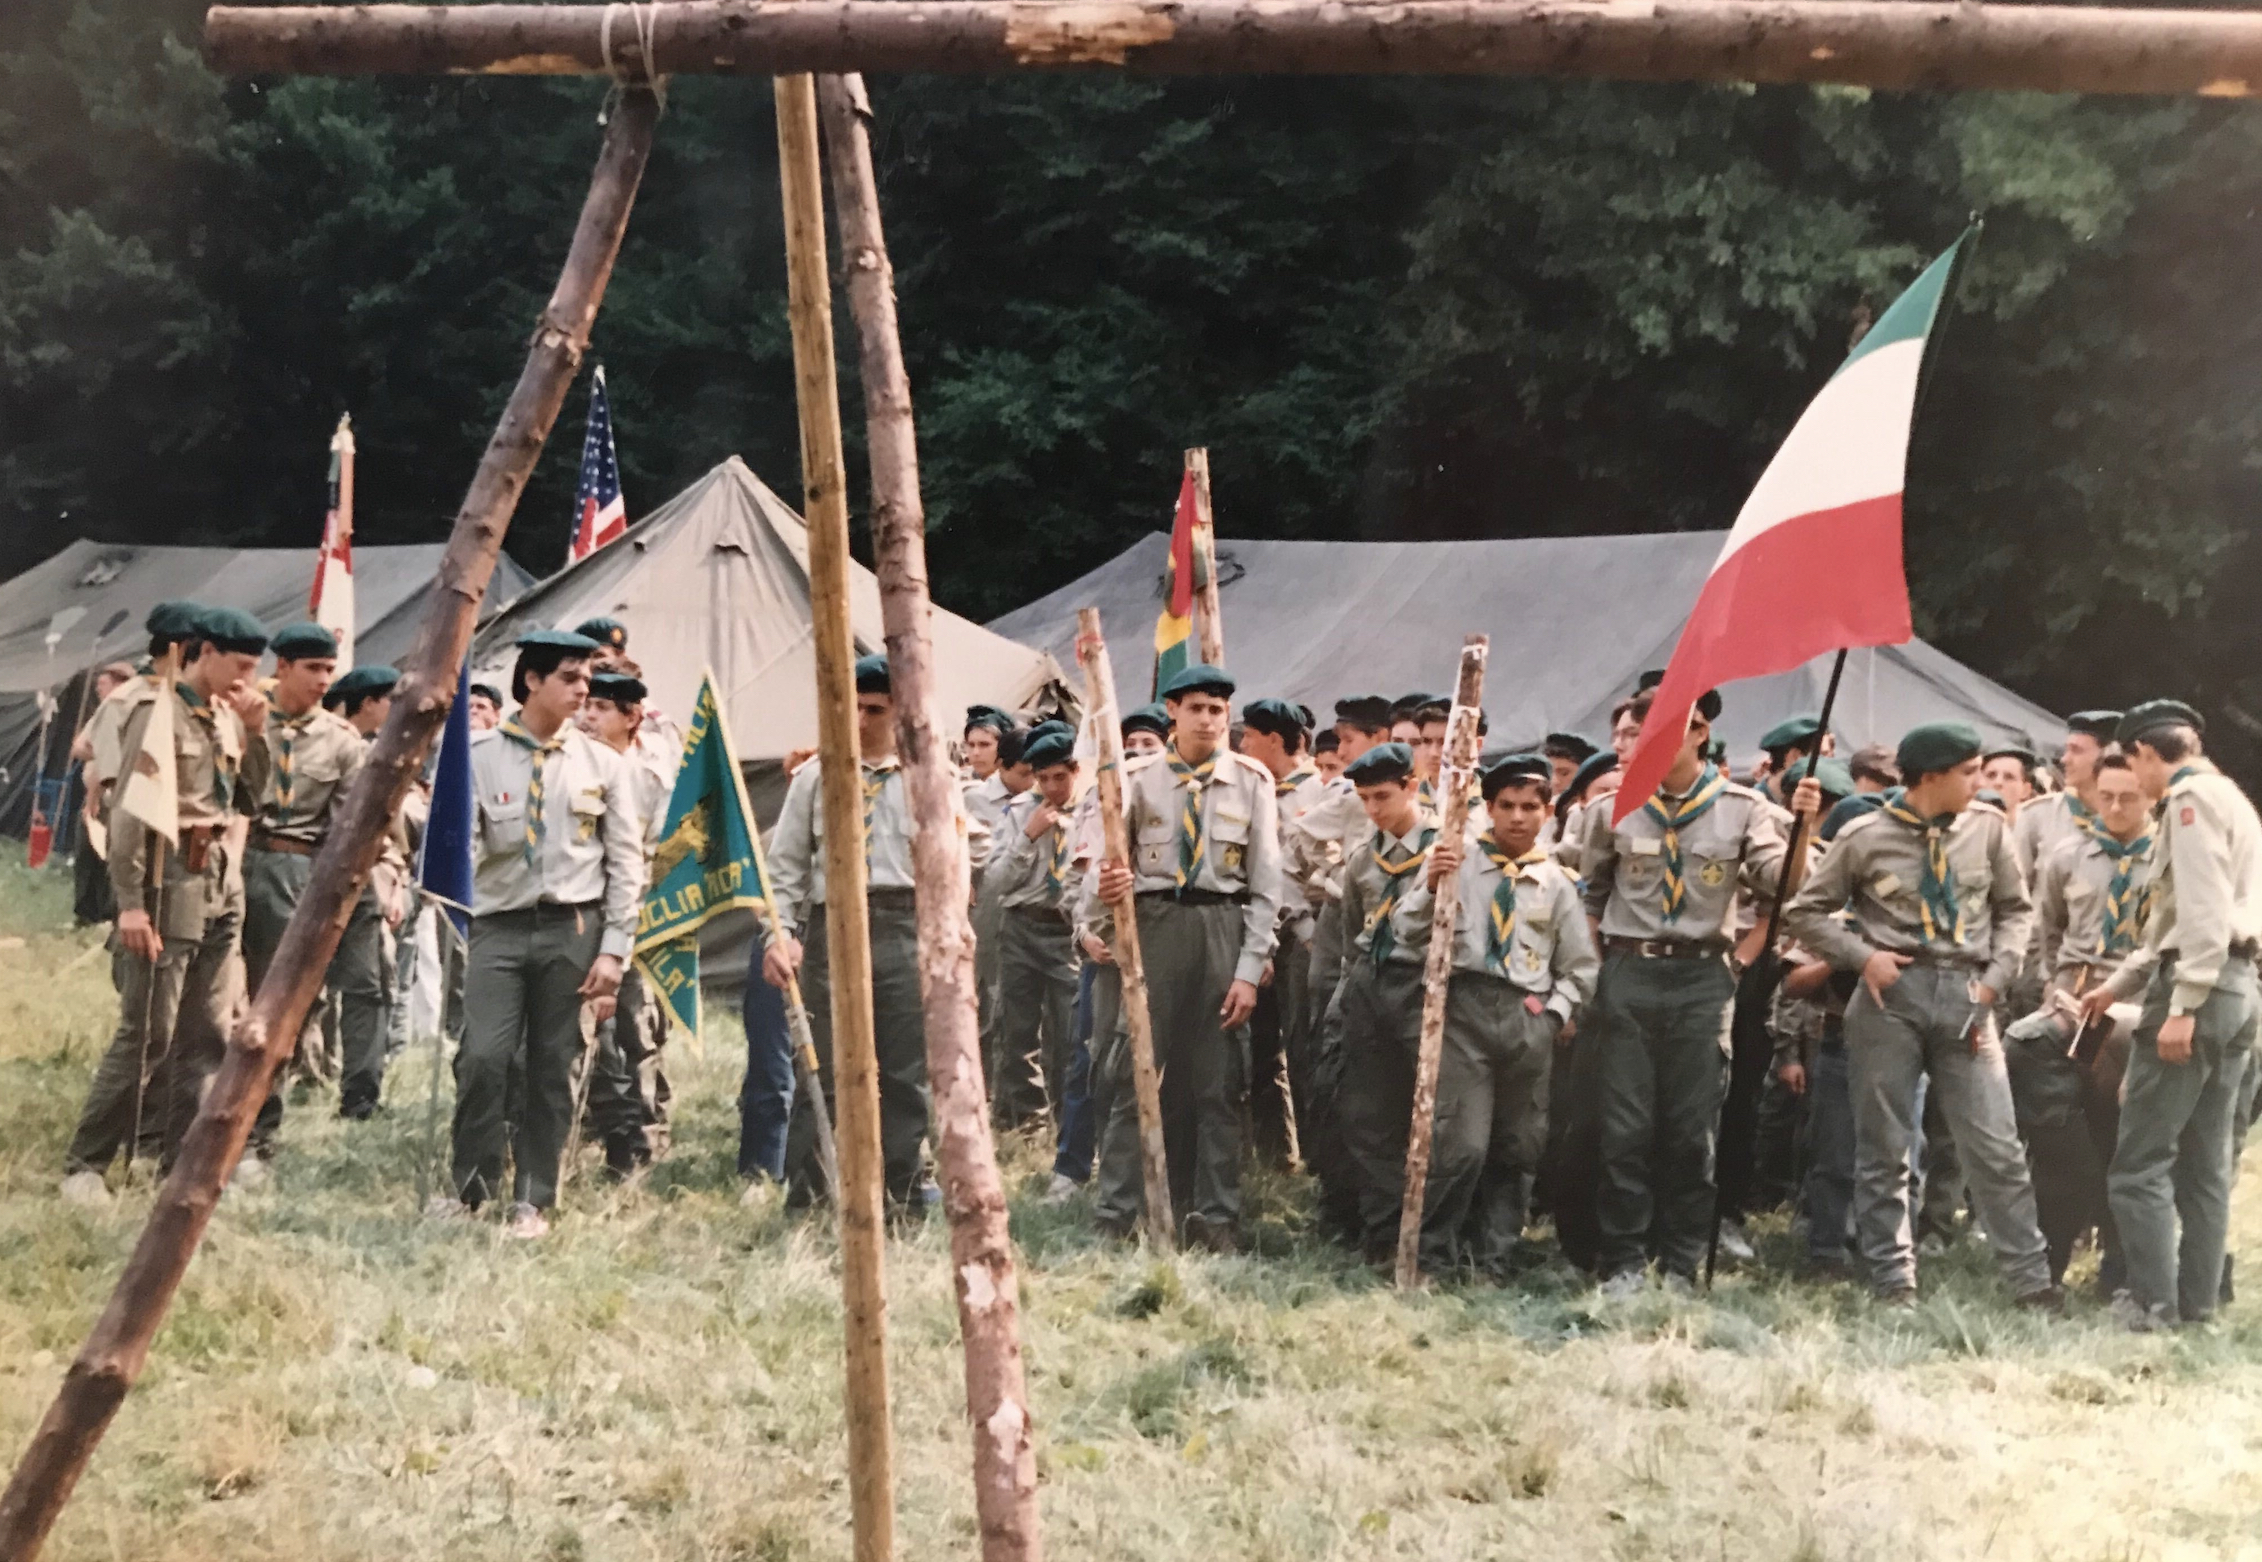 While living in Italy, Roberto Deni helped organize a Boy Scout troop that later attended a World Jamboree.